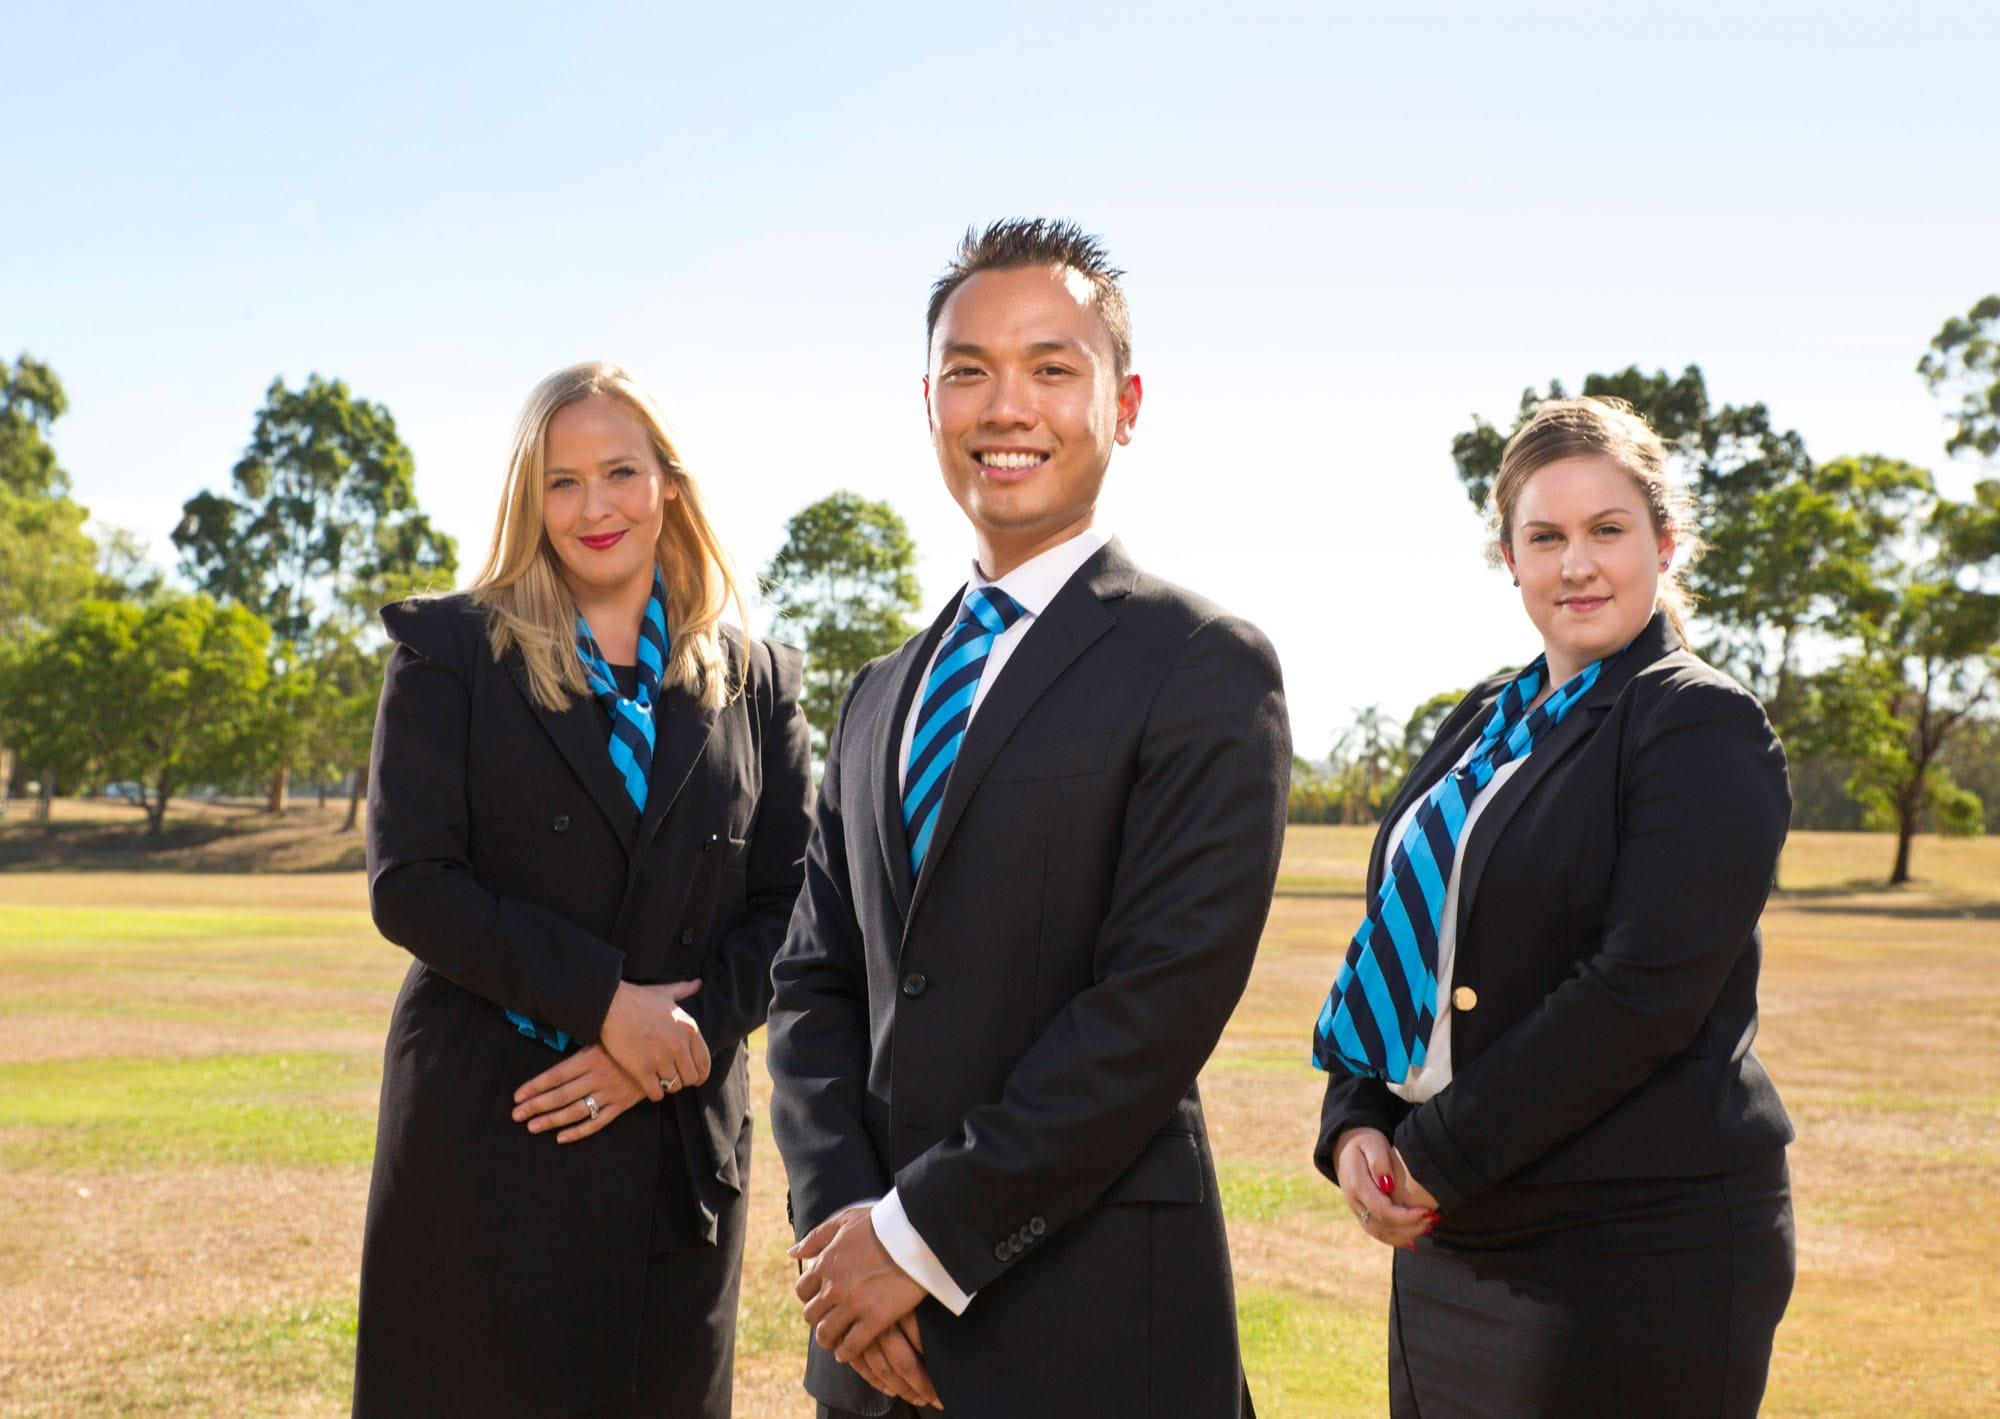 Corporate Portrait Photographer Brisbane